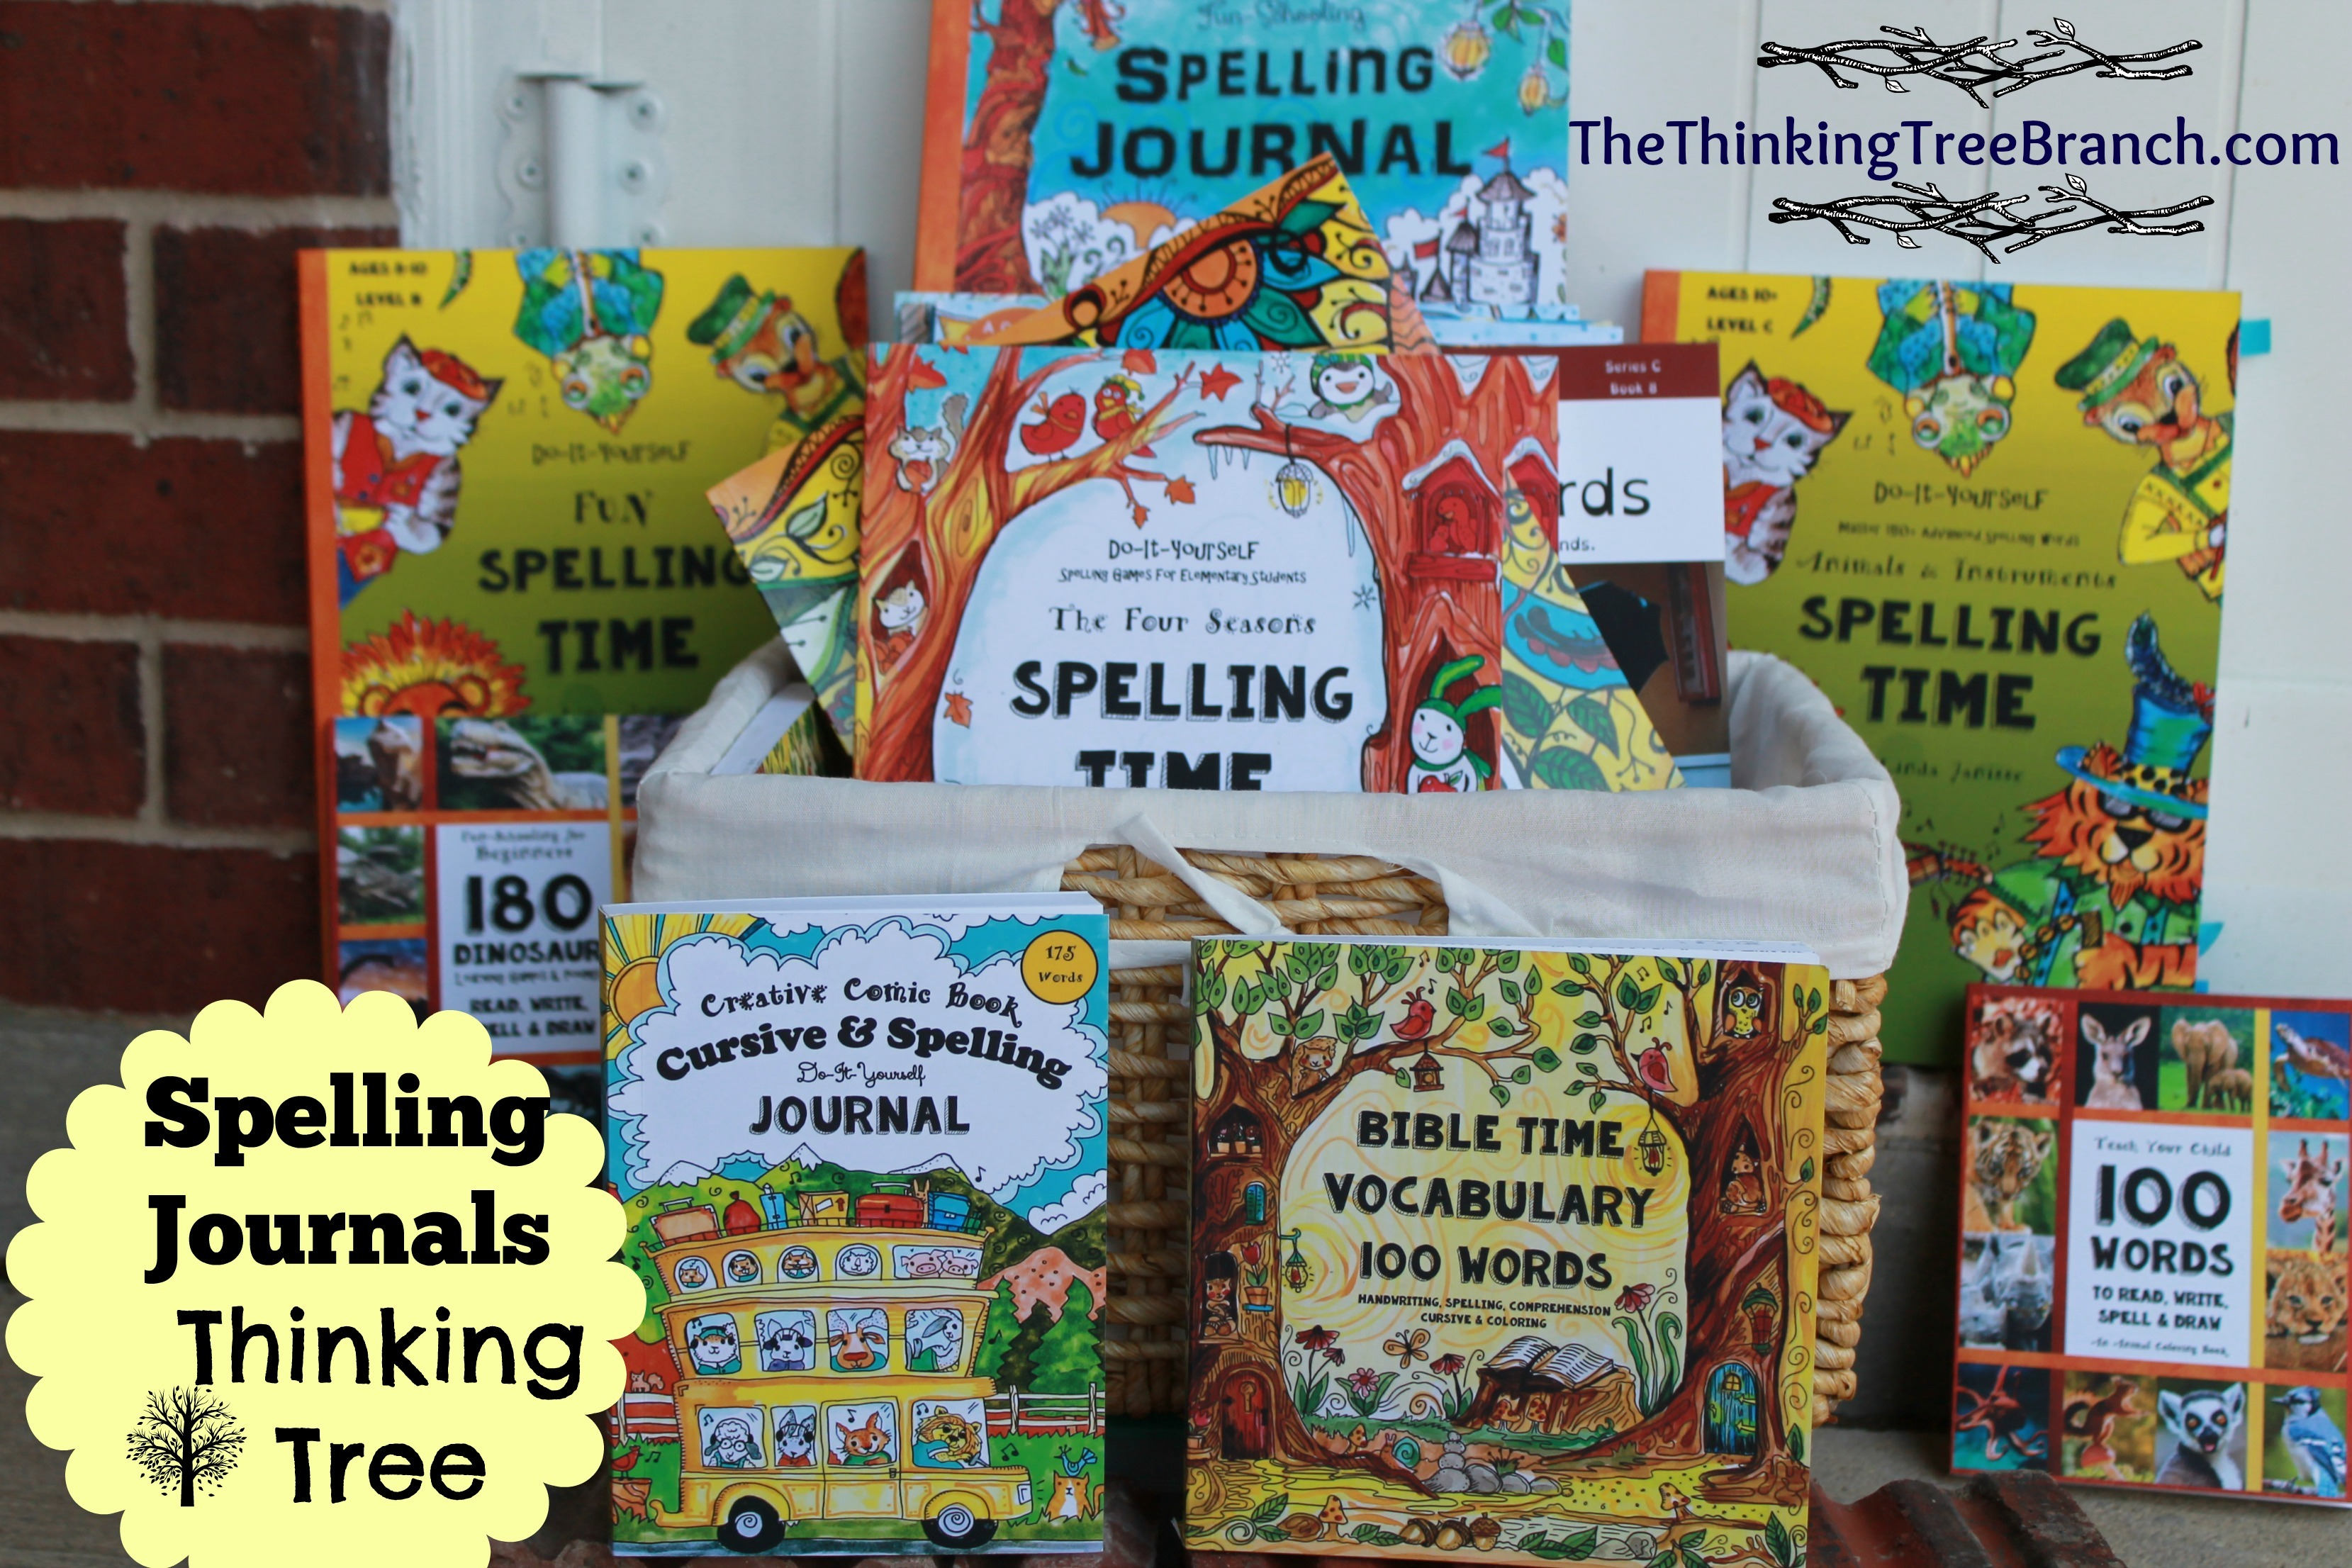 The Thinking Tree Spelling